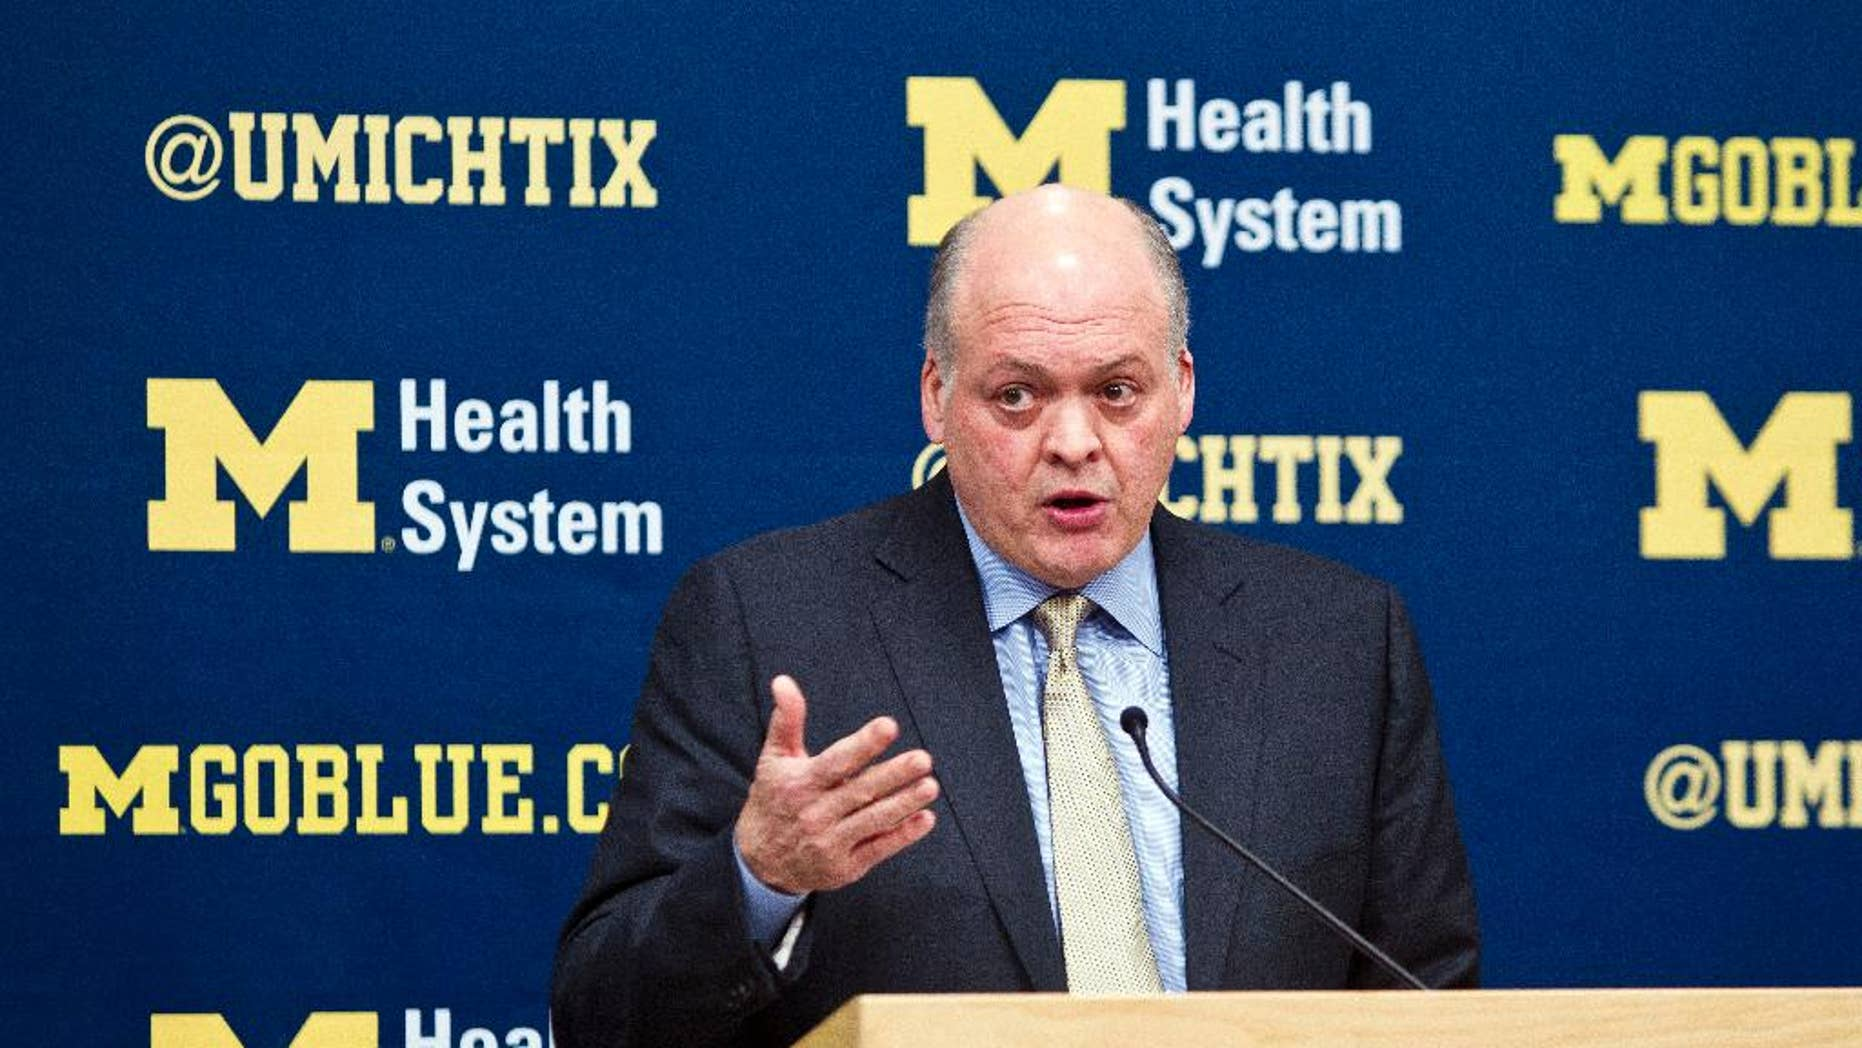 Michigan interim athletic director Jim Hackett announces the immediate dismissal of head coach Brady Hoke during a press conference in Ann Arbor, Mich., Tuesday, Dec. 2, 2014. (AP Photo/Tony Ding)